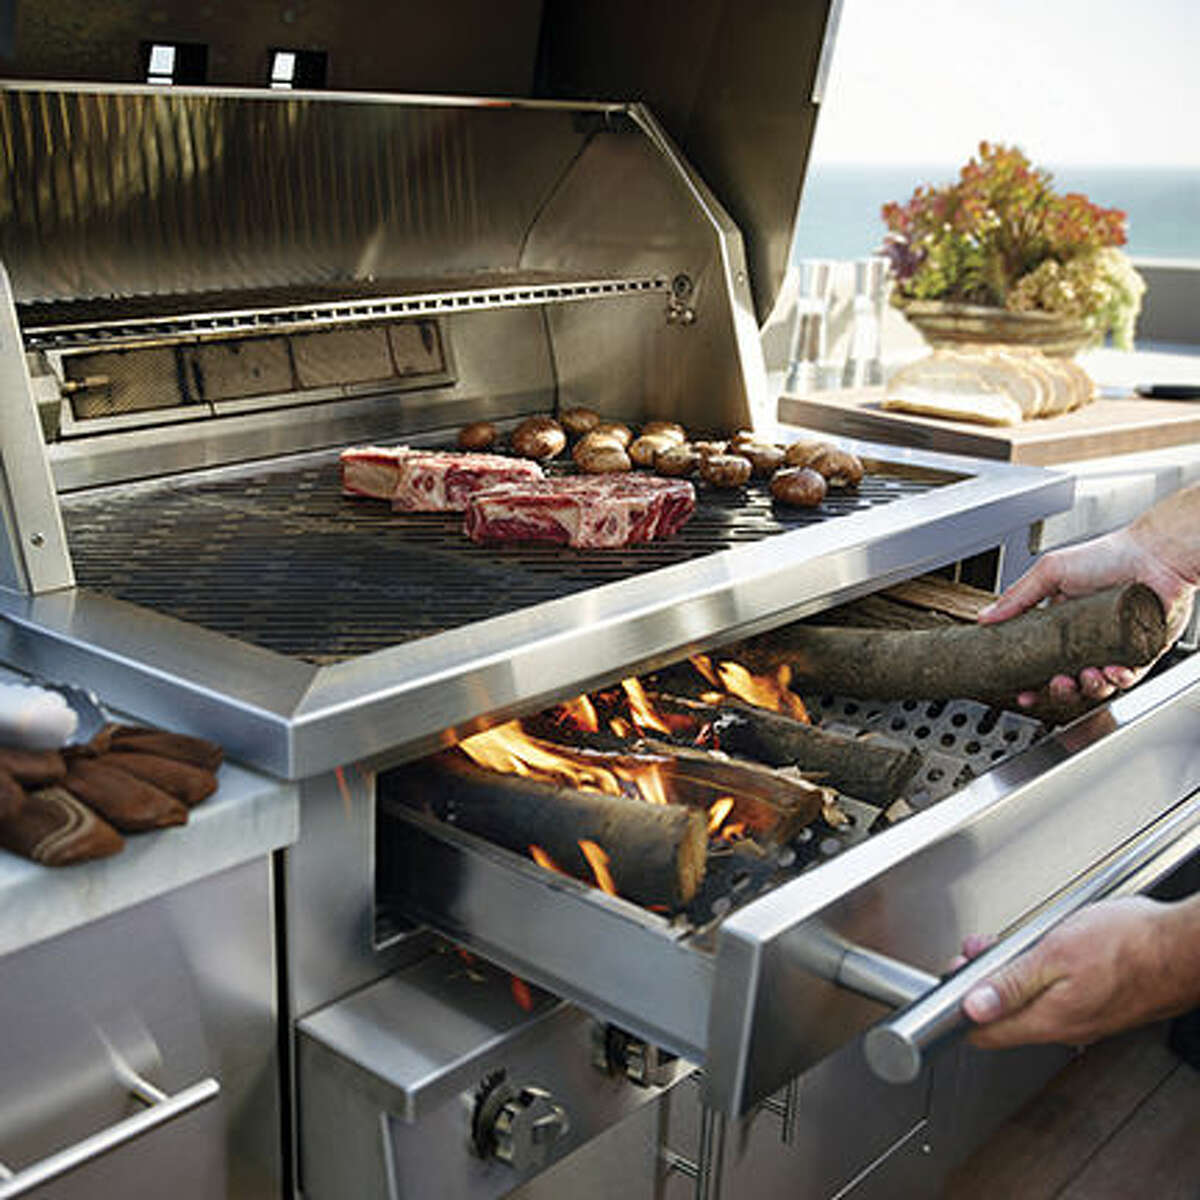 How to Choose the Right Grill Size